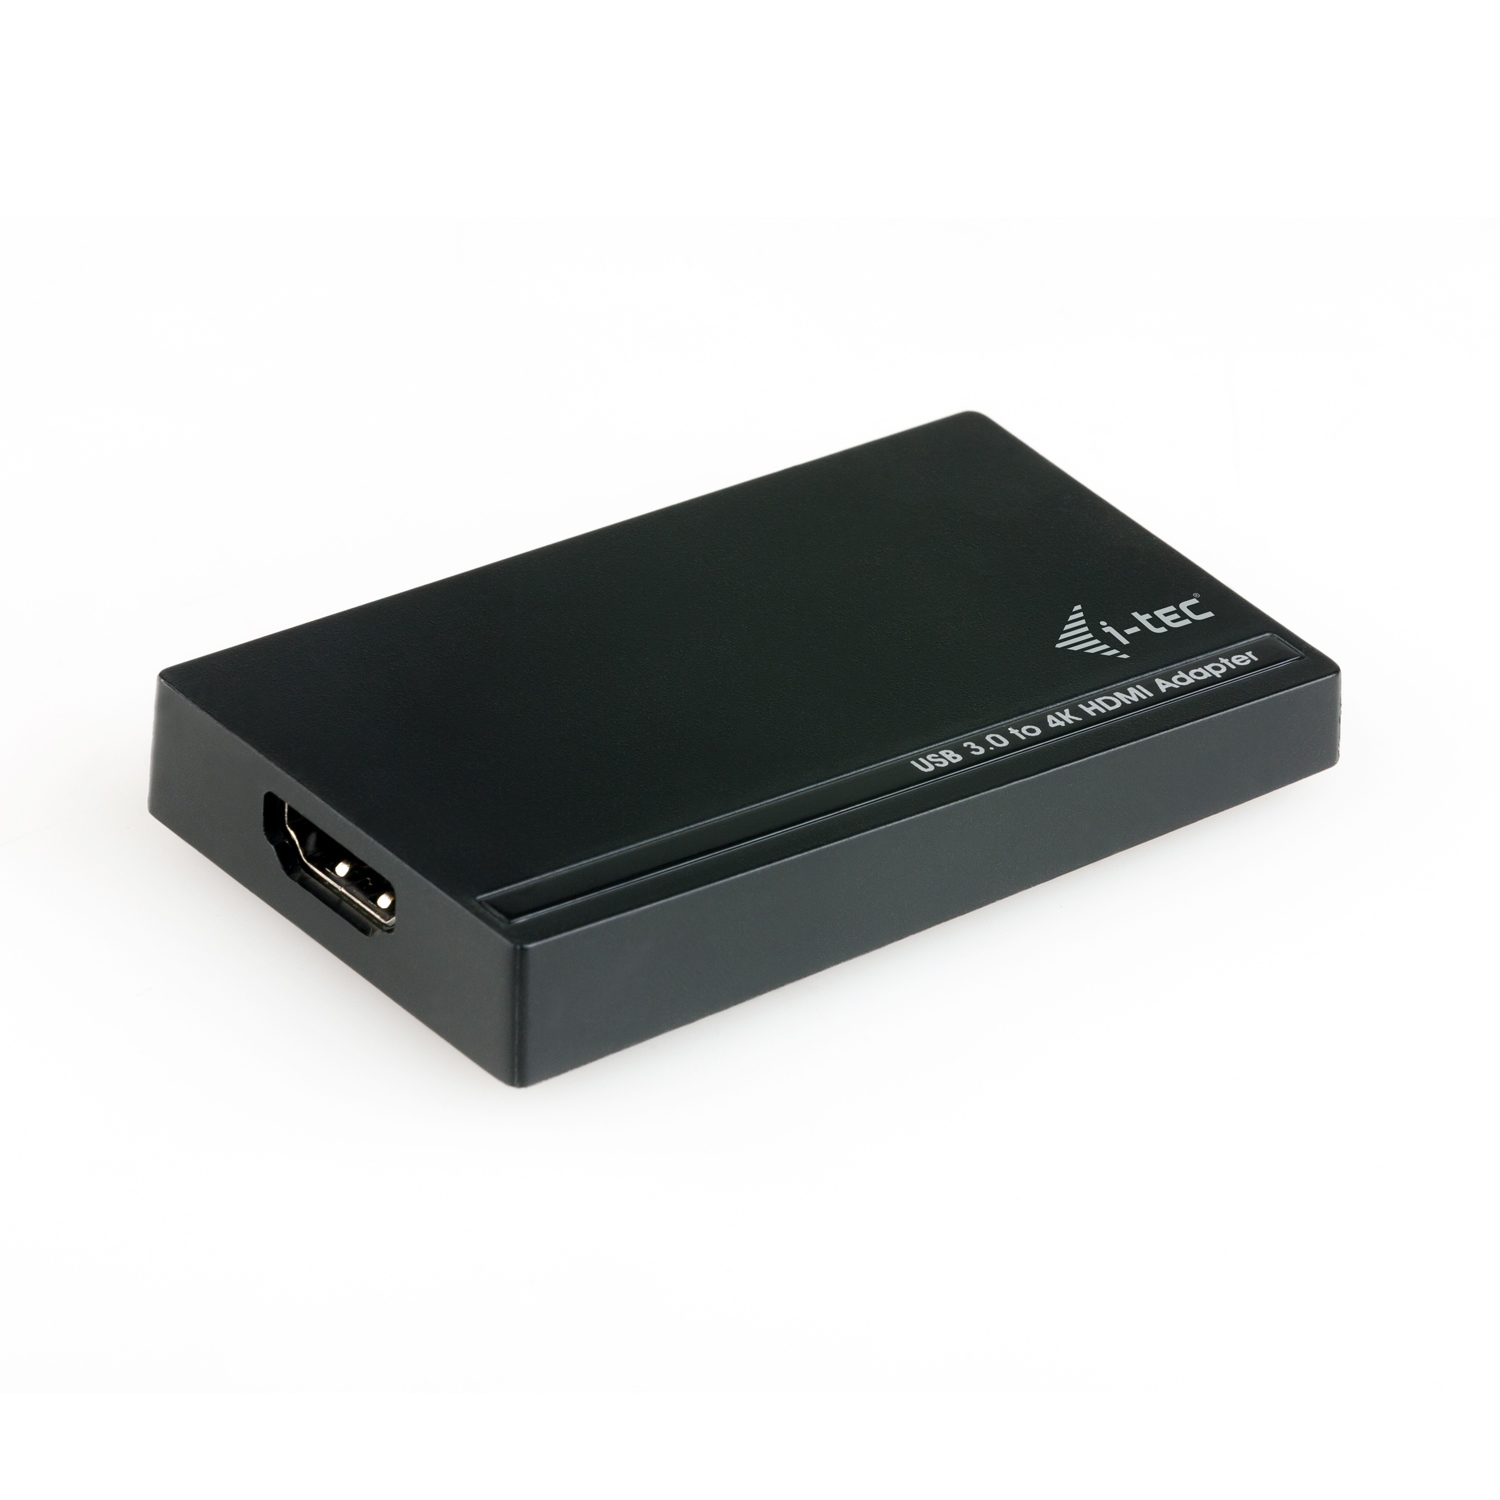 i-Tec USB3.0/HDMI 4K Ultra HD display adaptér, 3840x2160